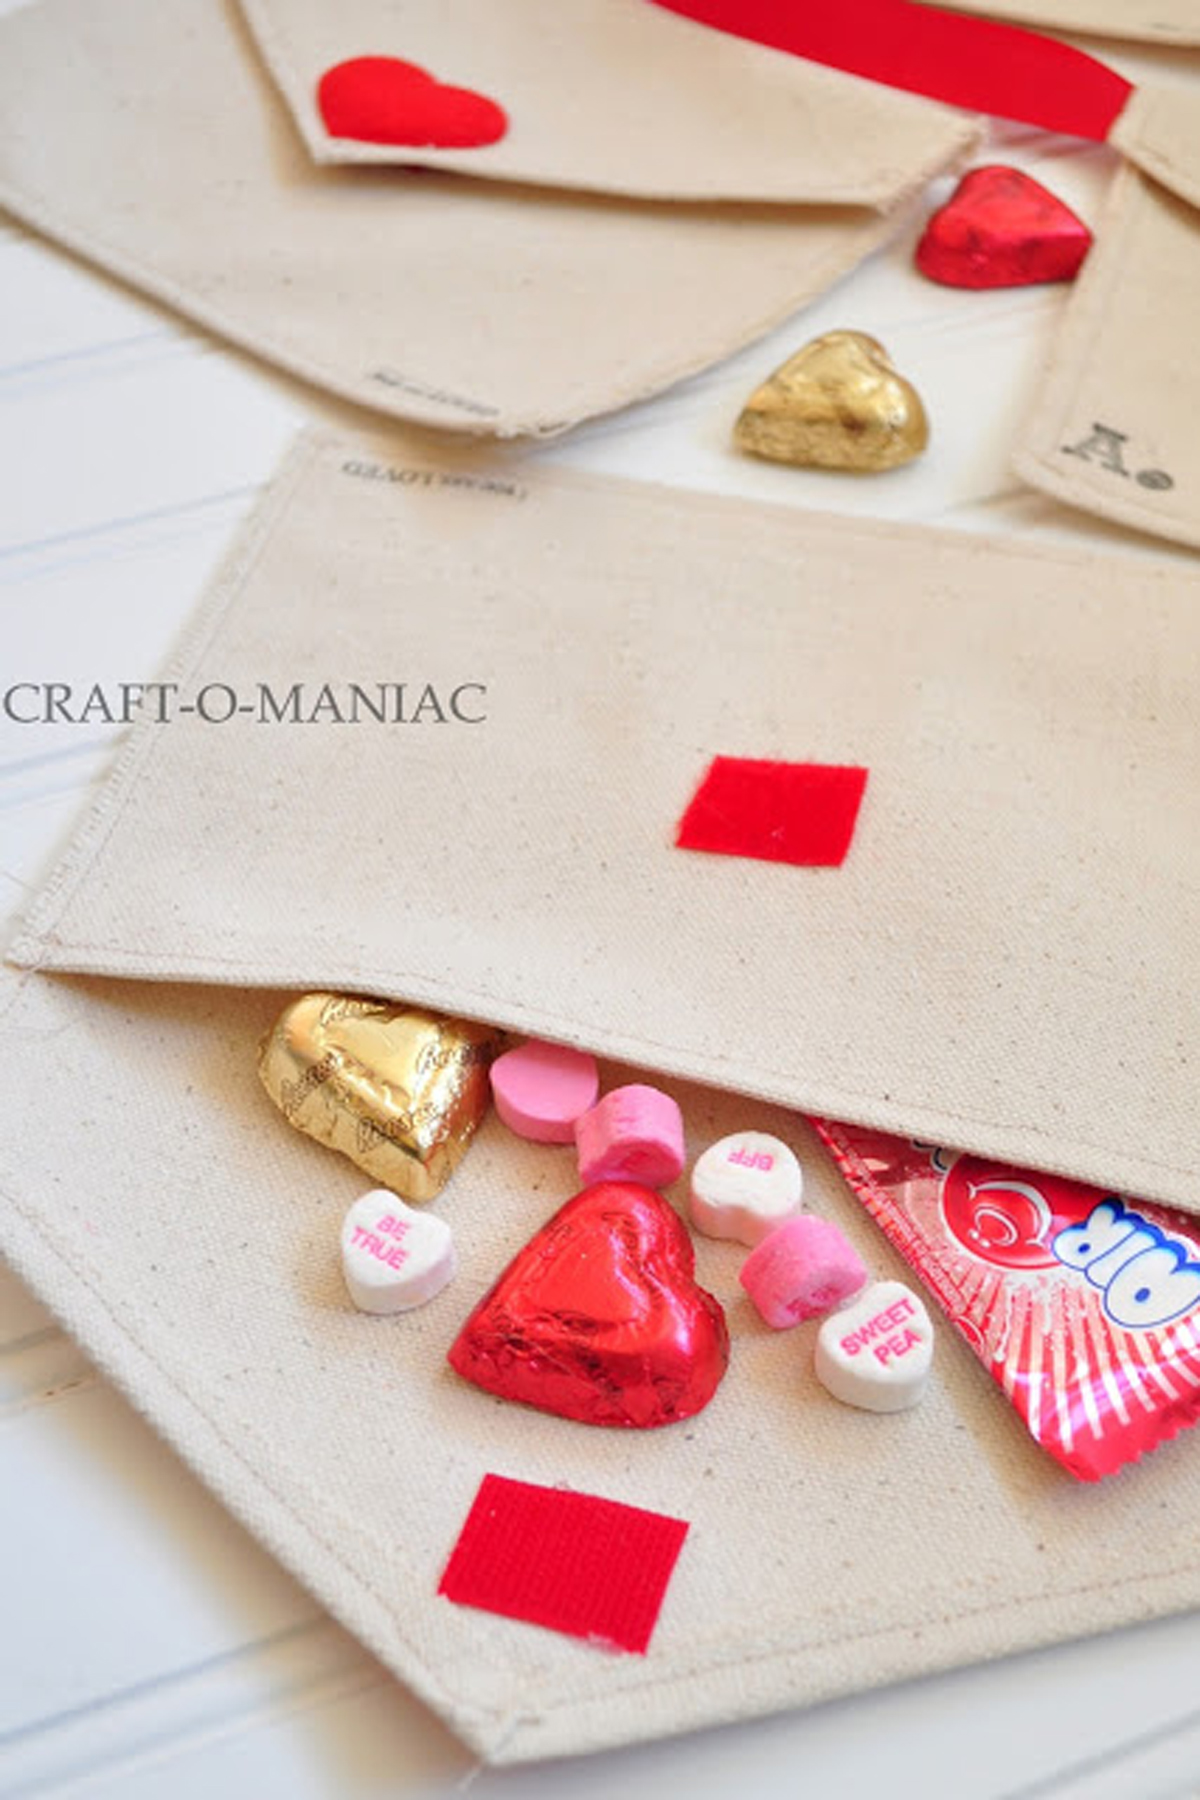 40 Valentine's Day Crafts and DIY Ideas - Best Ideas for ...